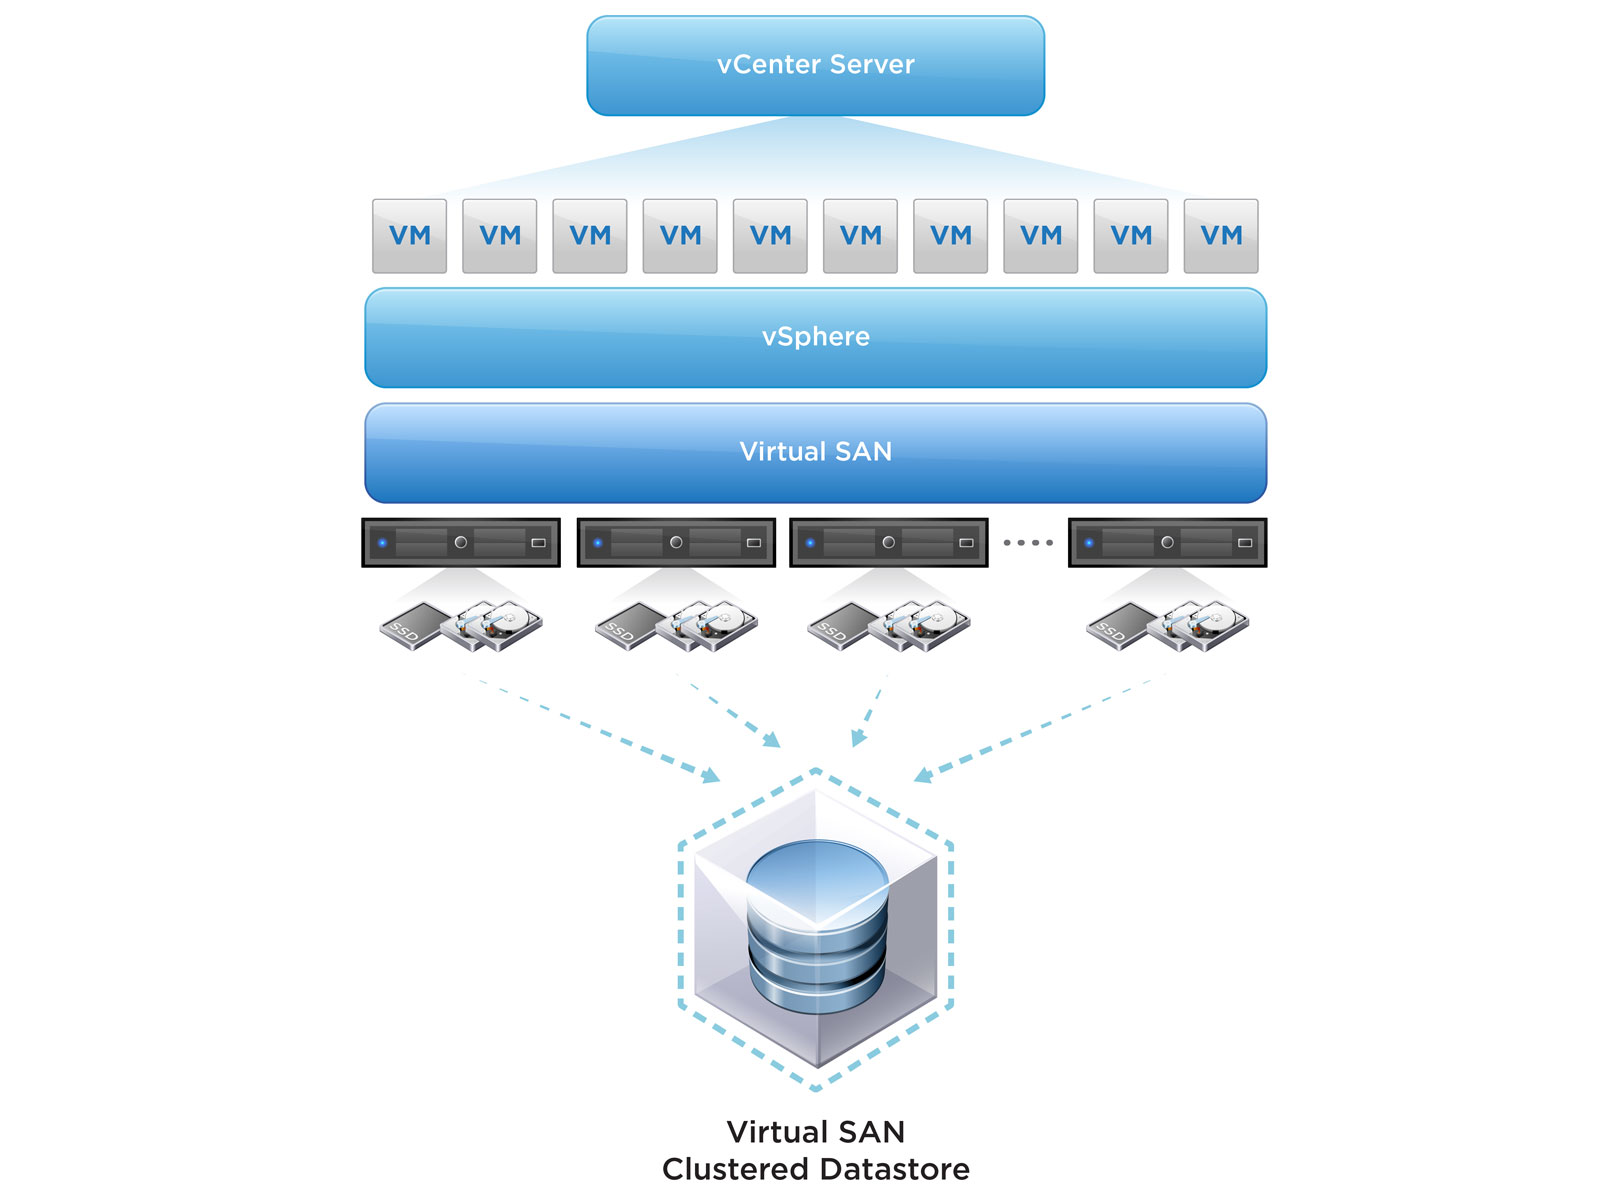 vmware airwatch recommended architecture guide